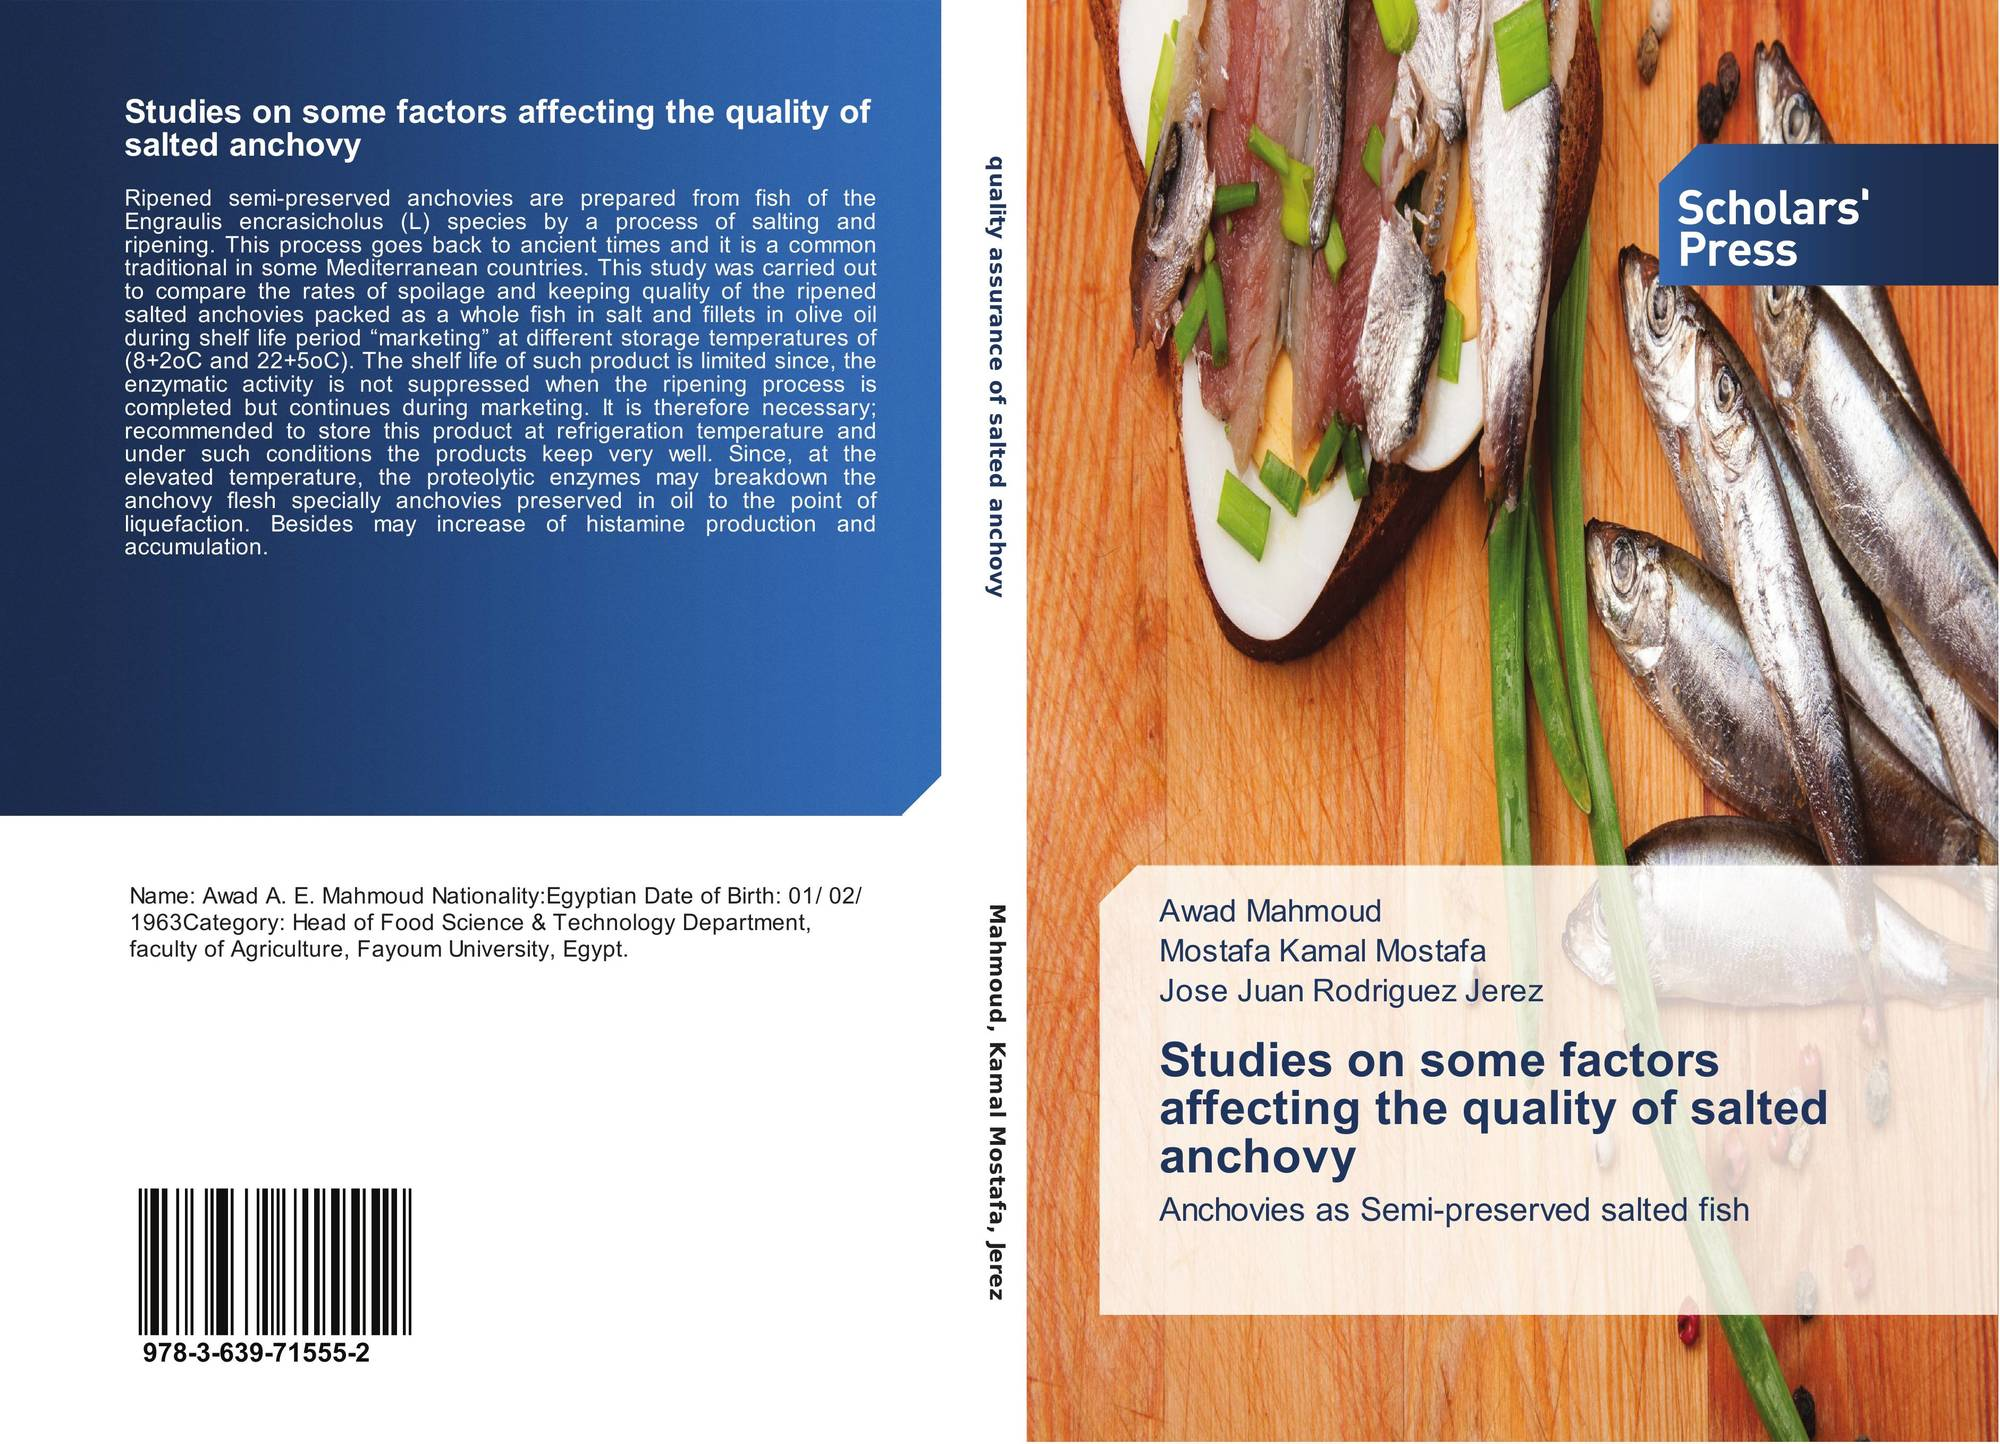 Studies on some factors affecting the quality of salted anchovy